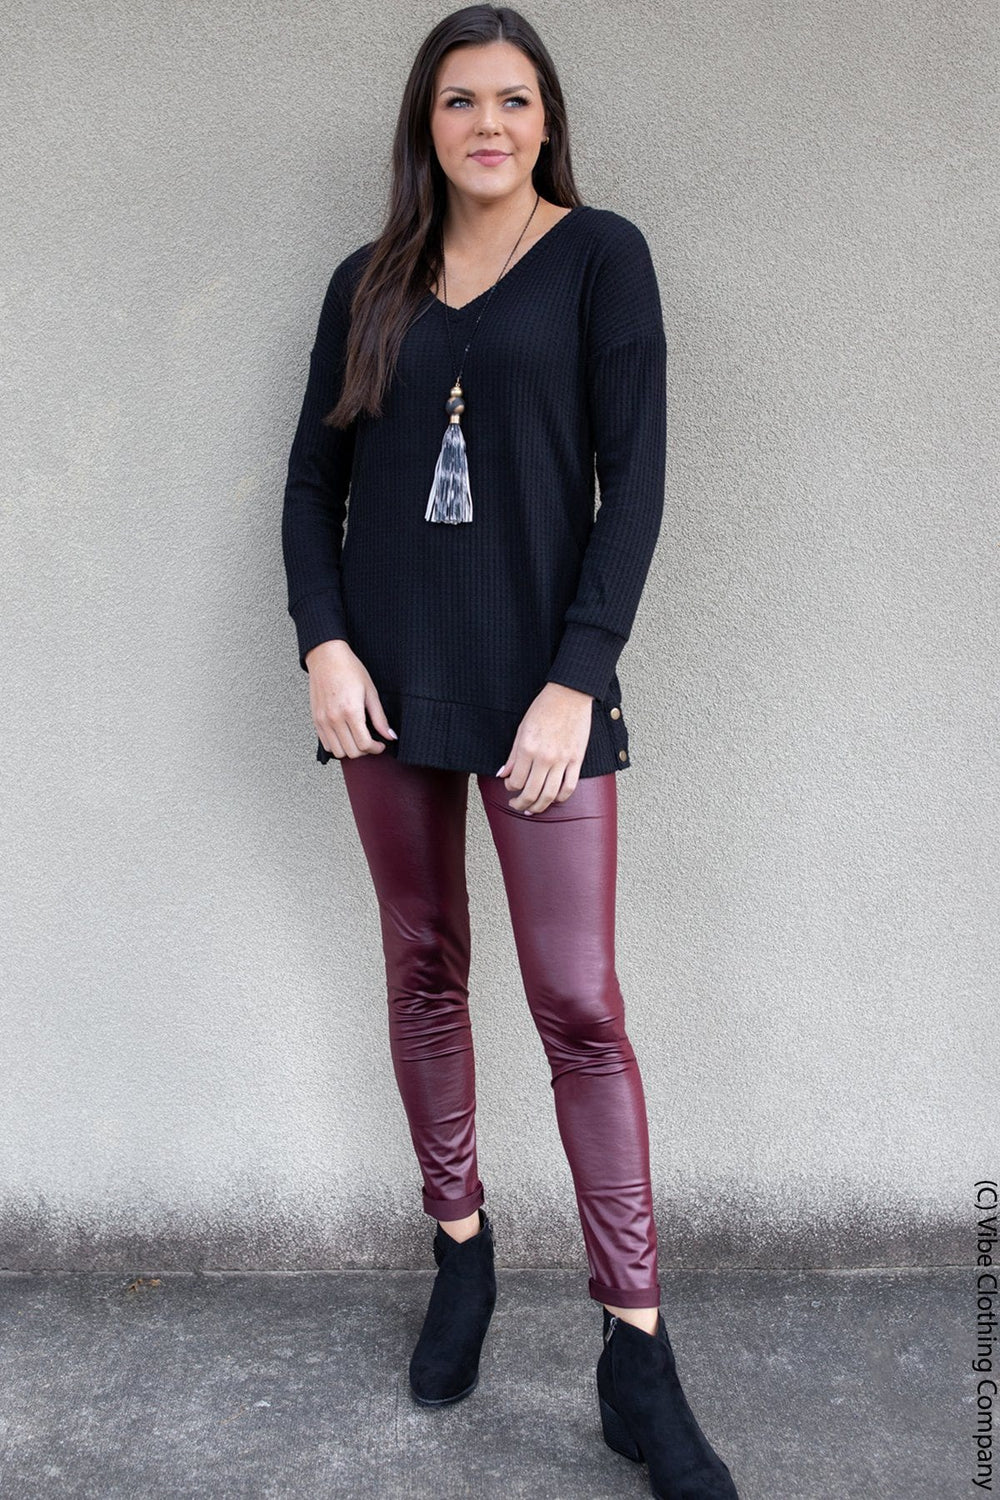 Pleather Leggings -Deep Burgundy bottoms 2ne1